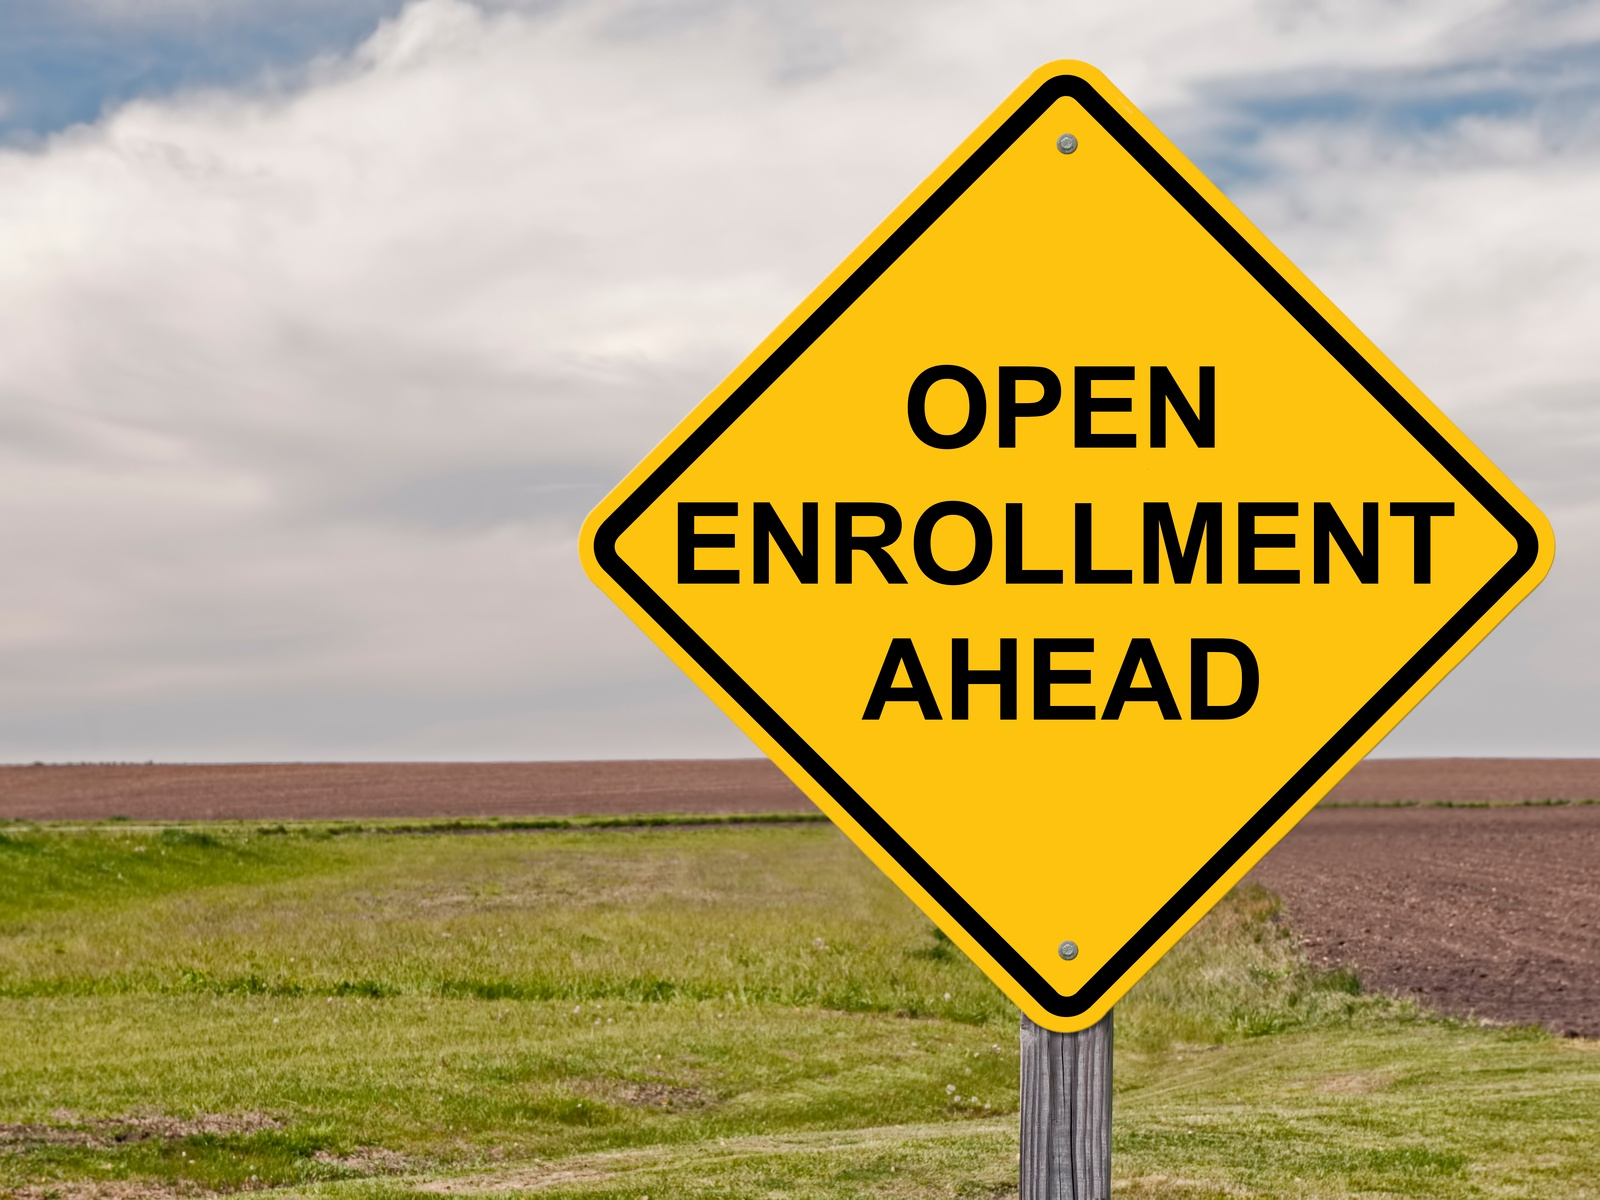 4 Ways to Spice Up Employee Benefits Open Enrollment Meetings - Featured Image